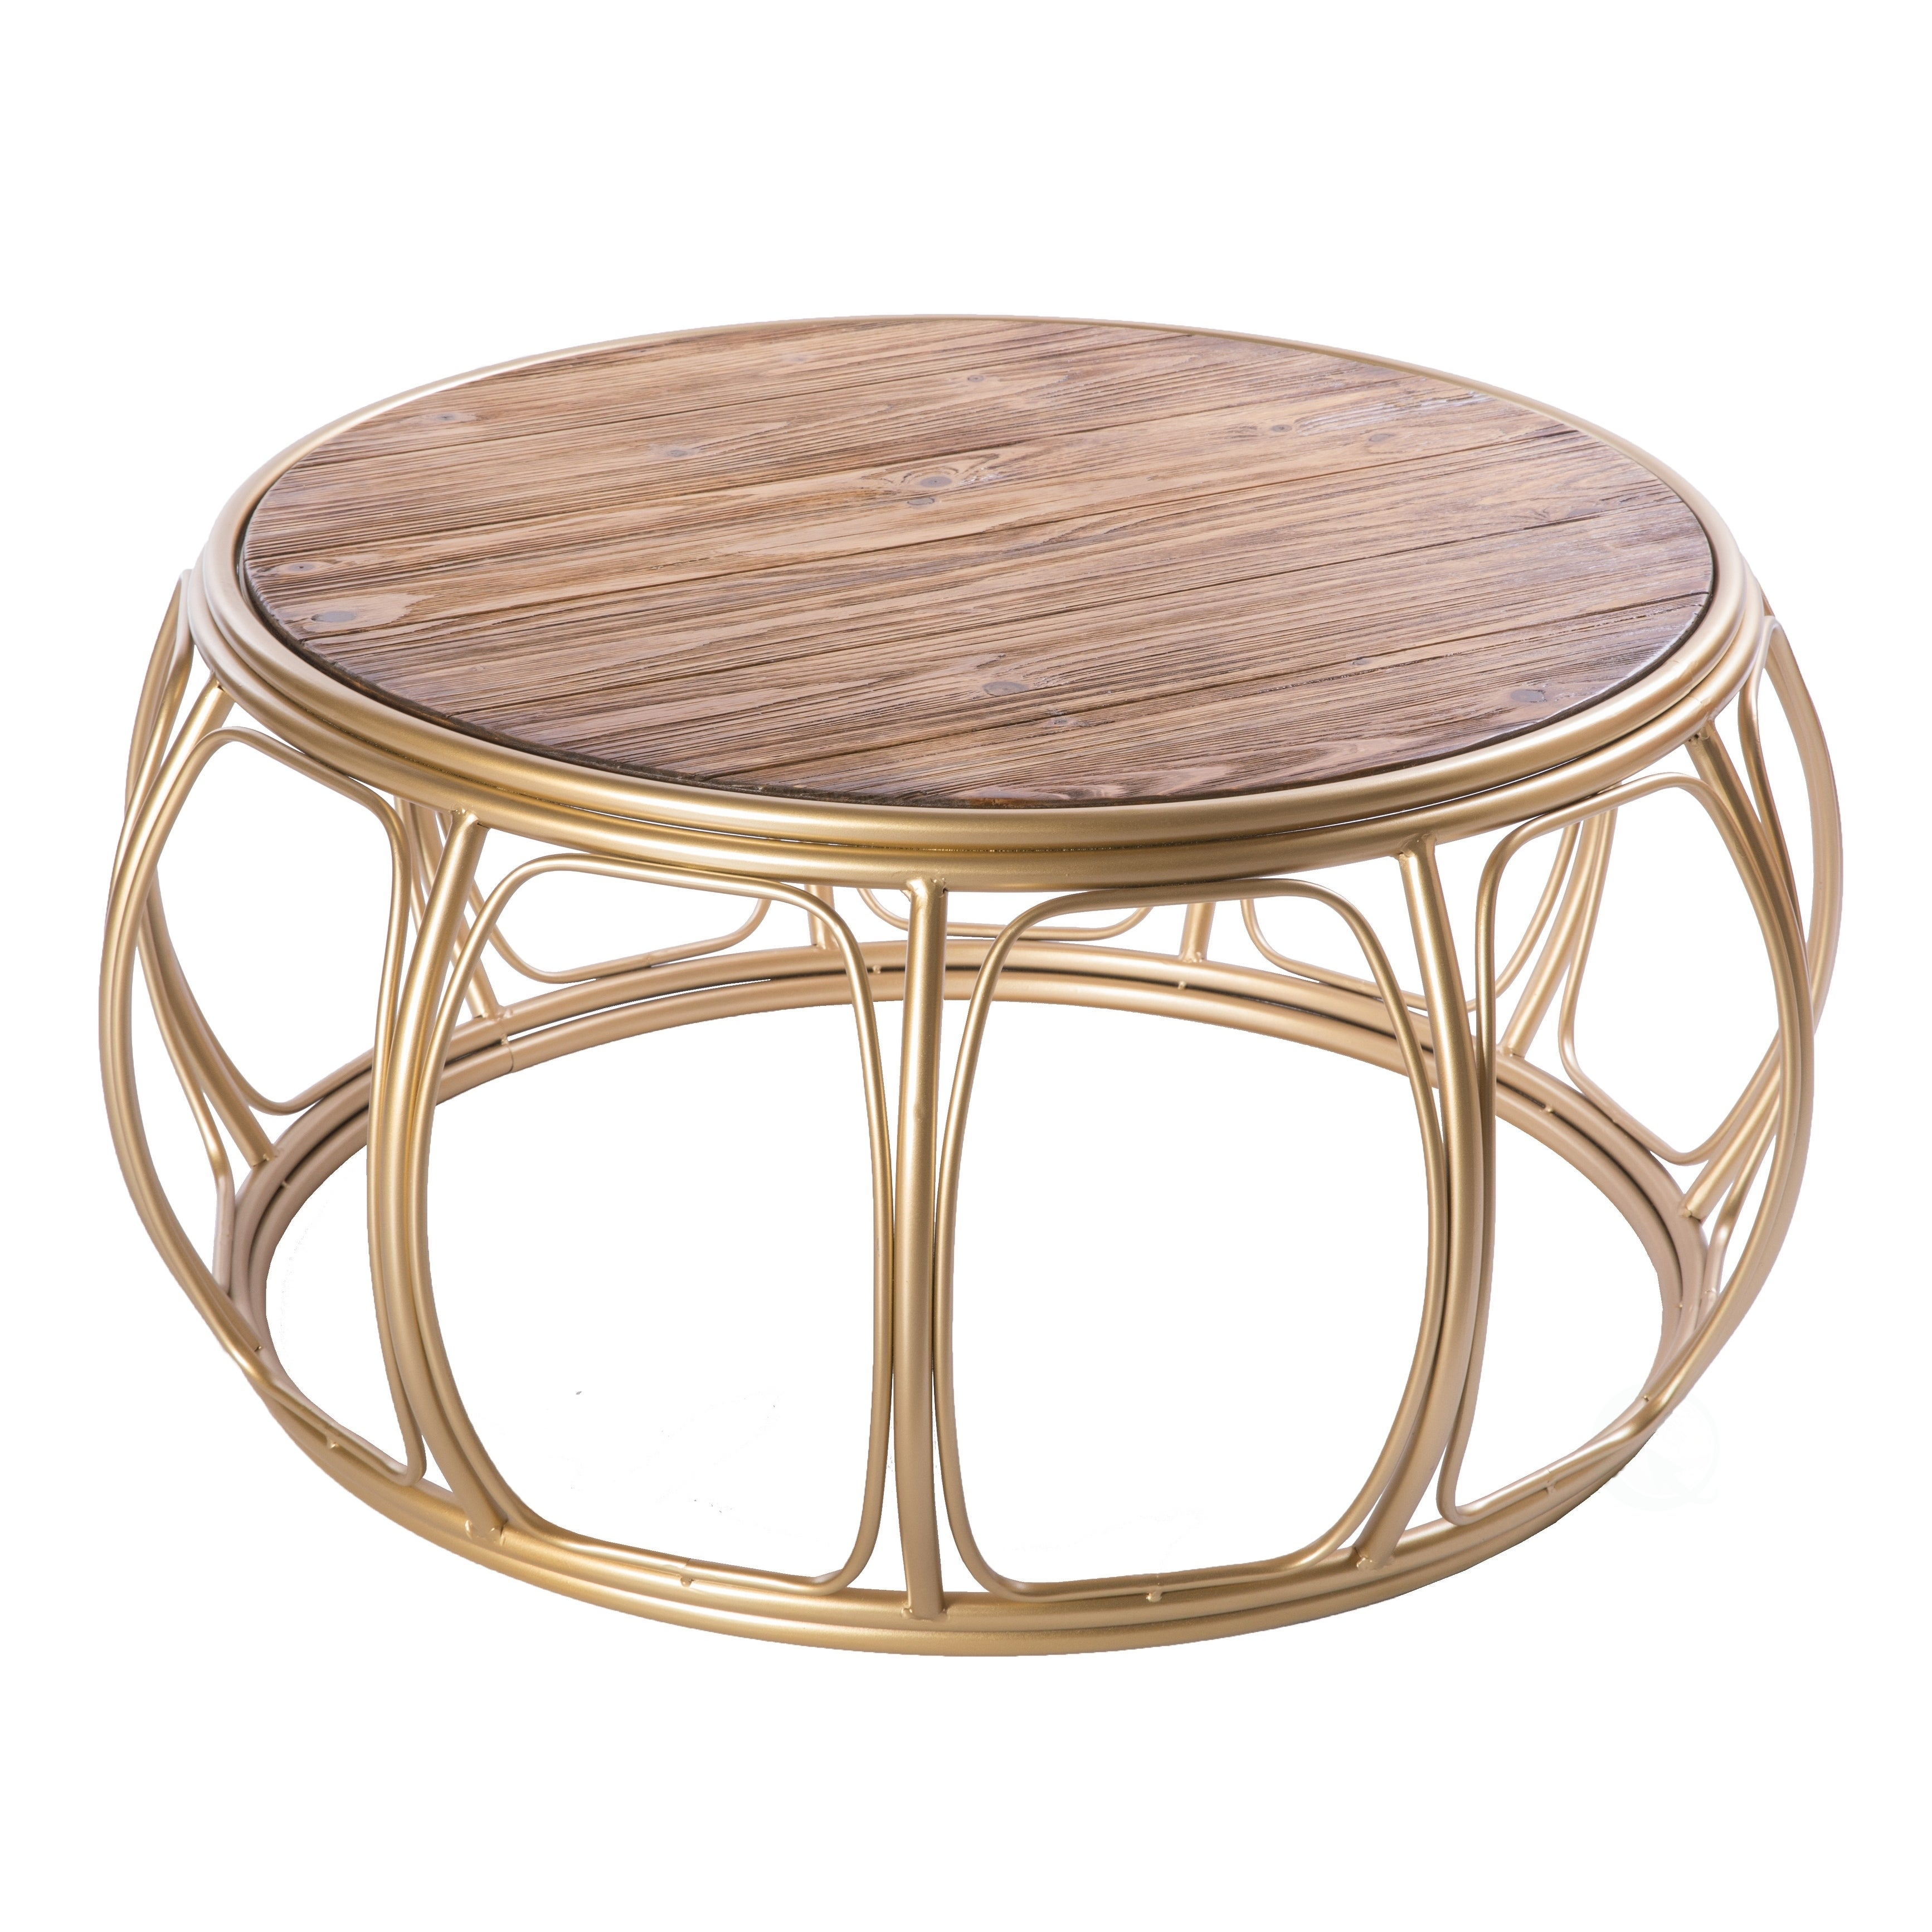 - Shop Large Round Wood And Metal Coffee Table - Overstock - 28889314